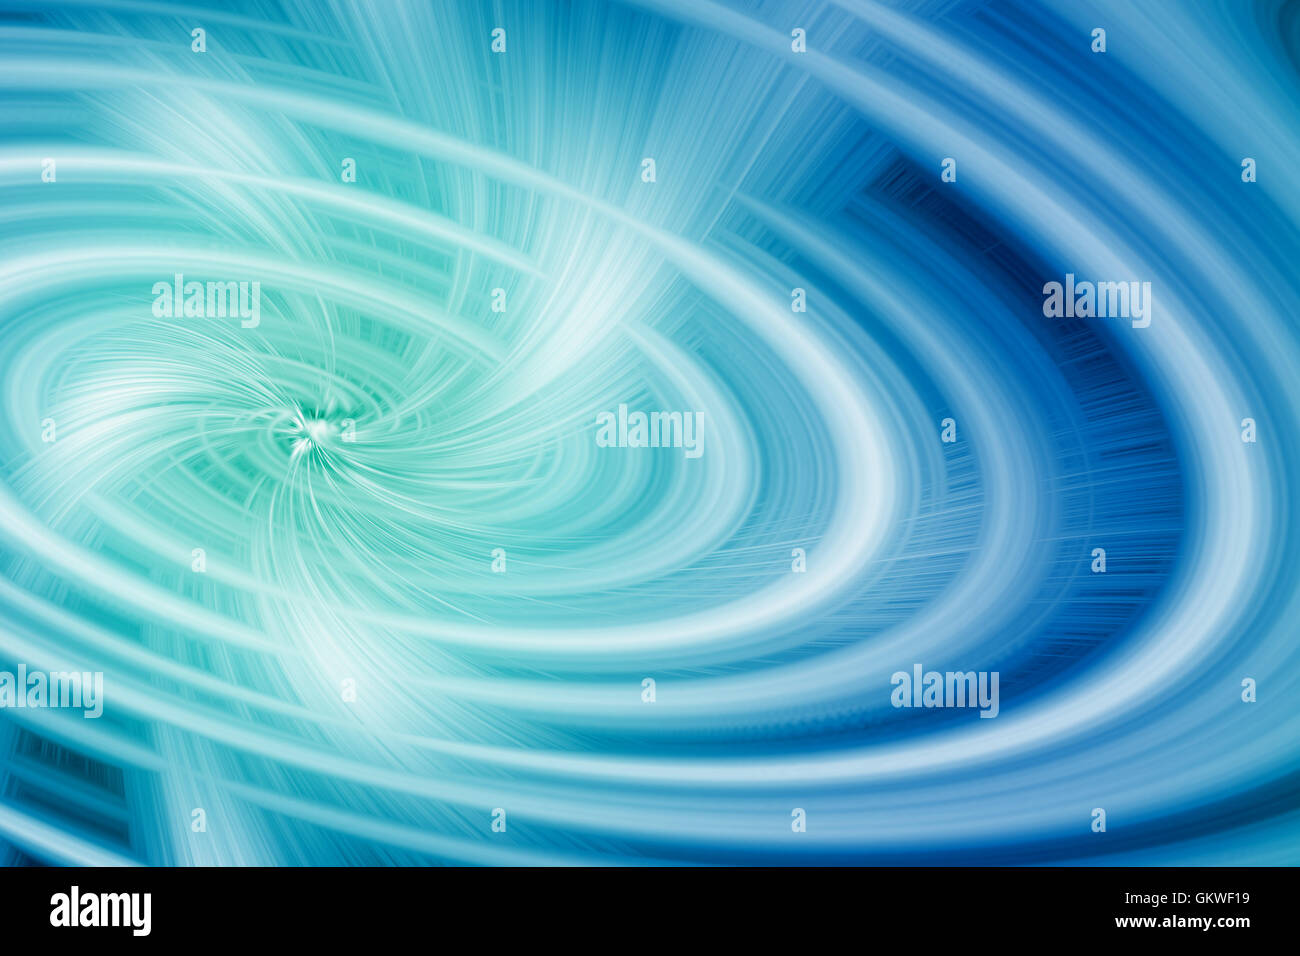 abstract background with cyclone lighting & abstract background with cyclone lighting Stock Photo: 115501269 - Alamy